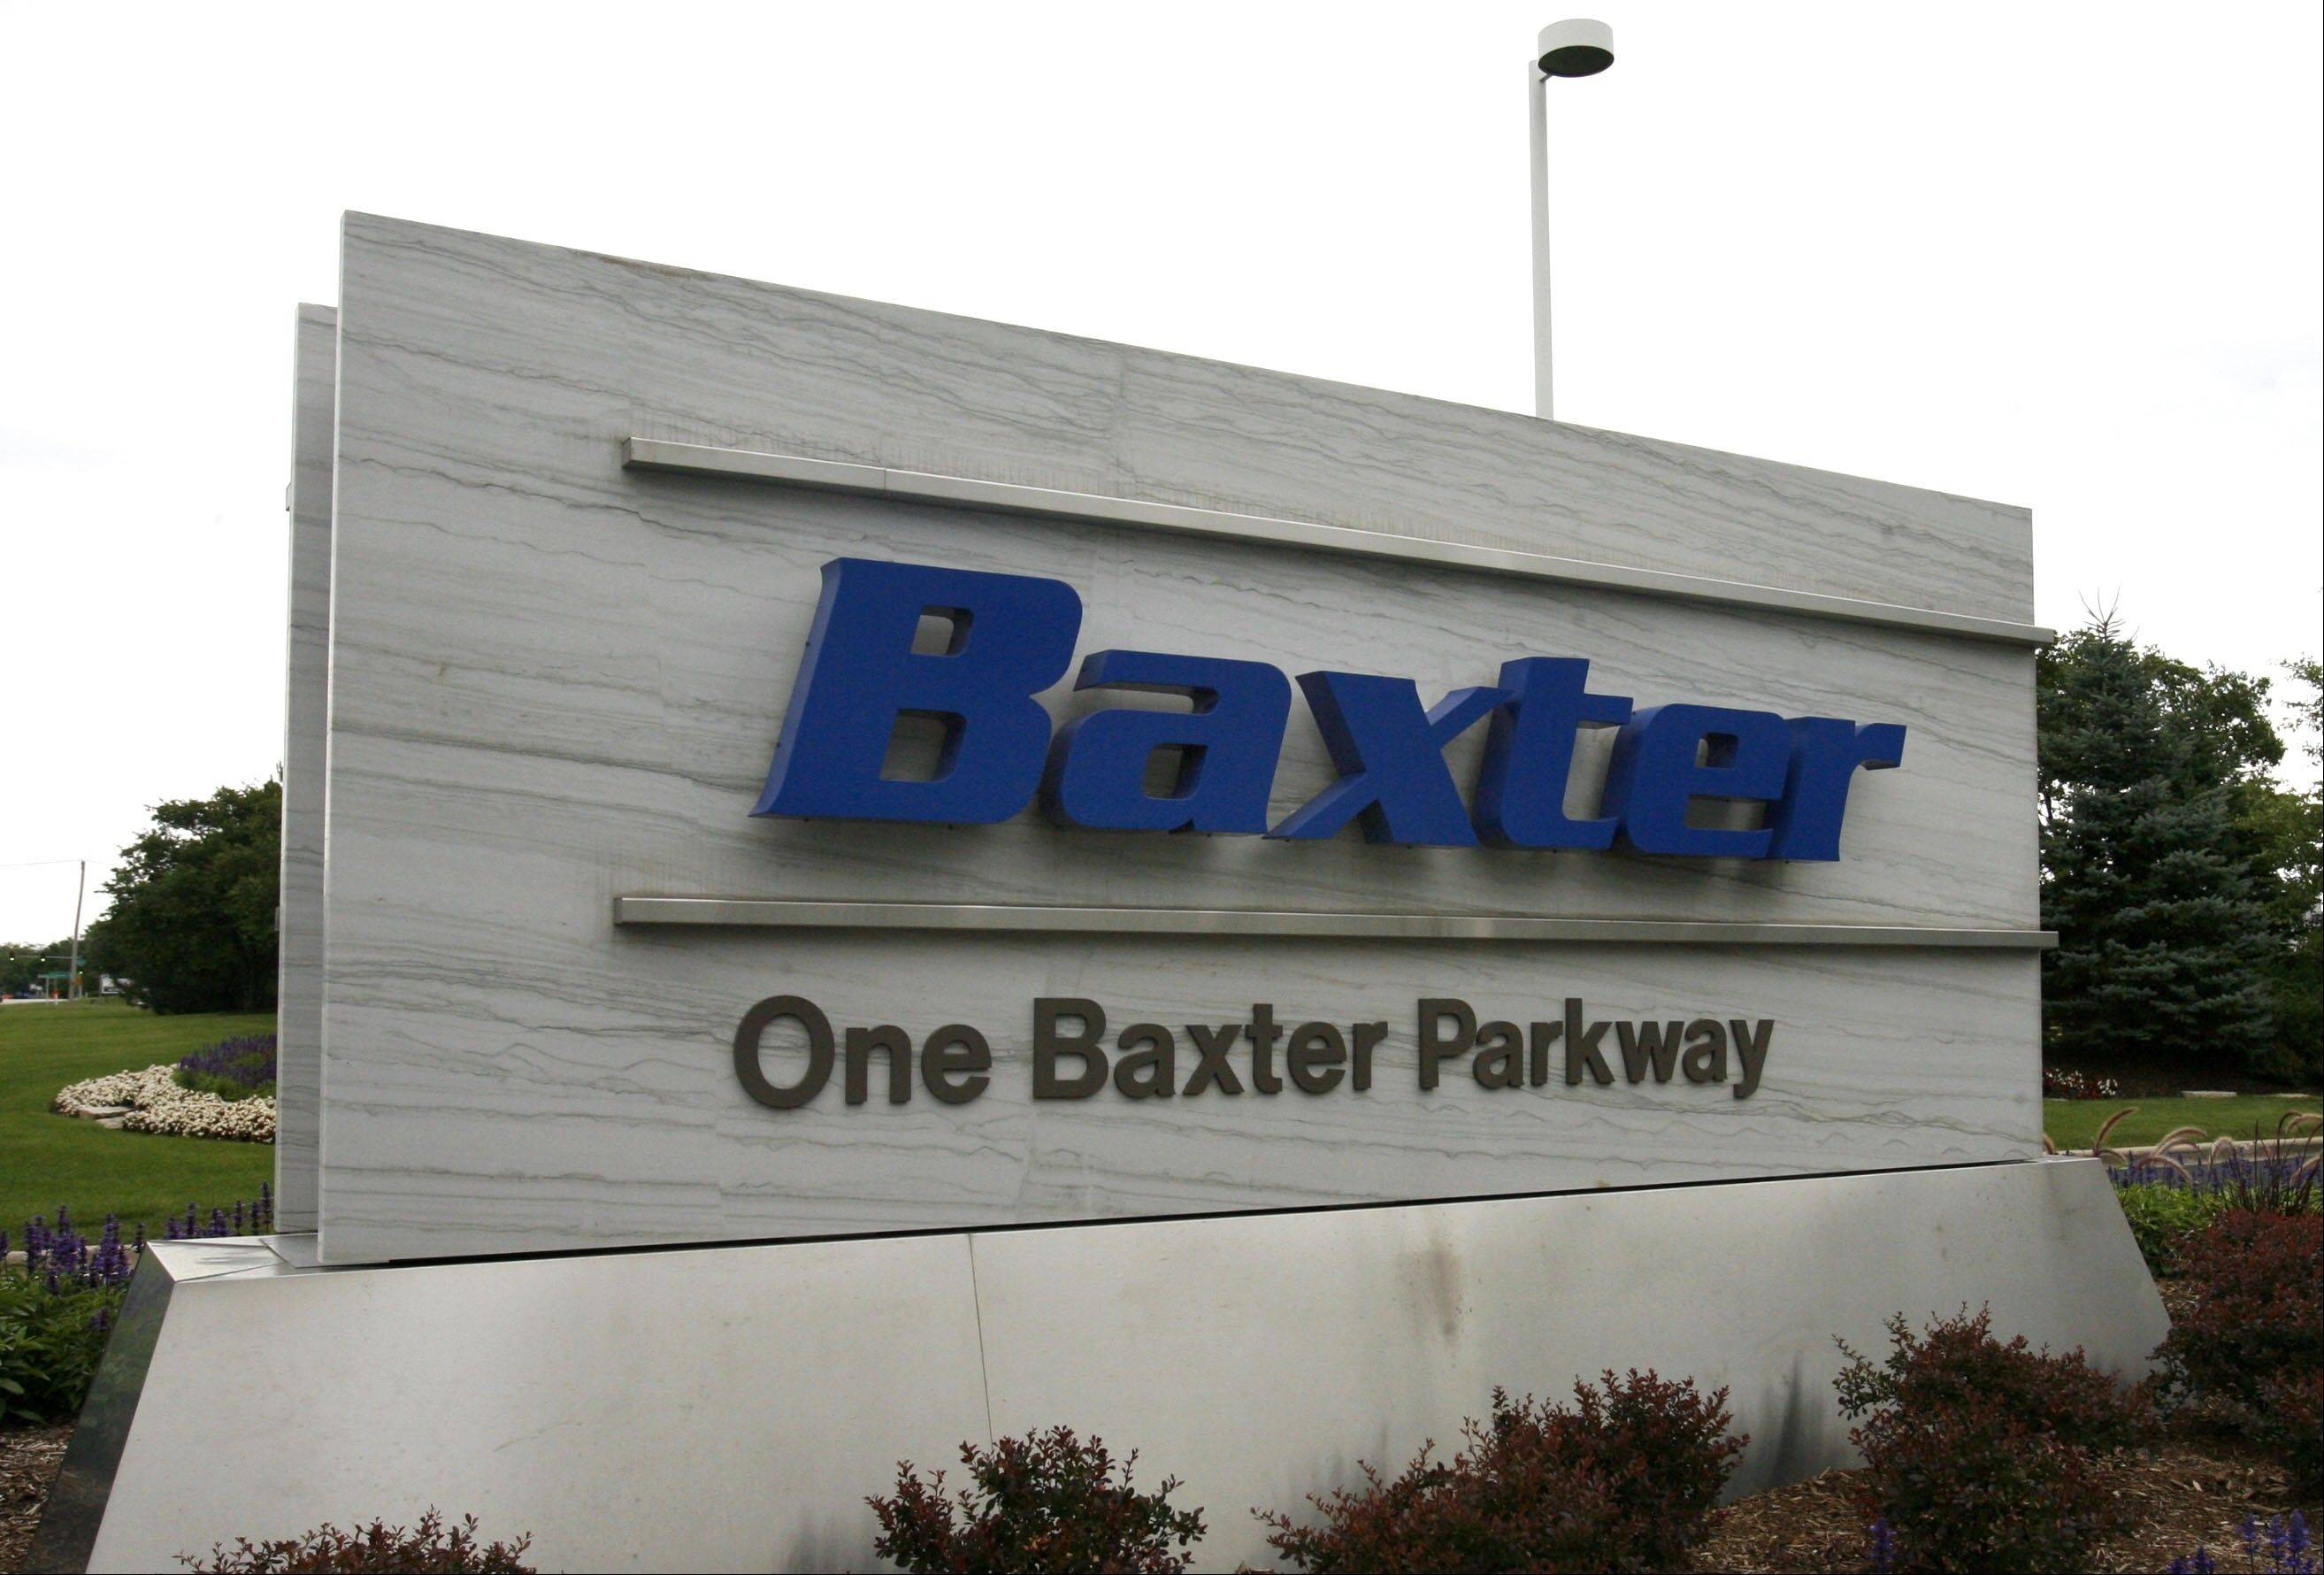 A lawyer in Mexico for Bannockburn-based Baxter International Inc. offered to pay an opposing expert if he would leave the country on a key court date to undermine the case, according to a recording of the conversation and sworn testimony provided to The Associated Press.